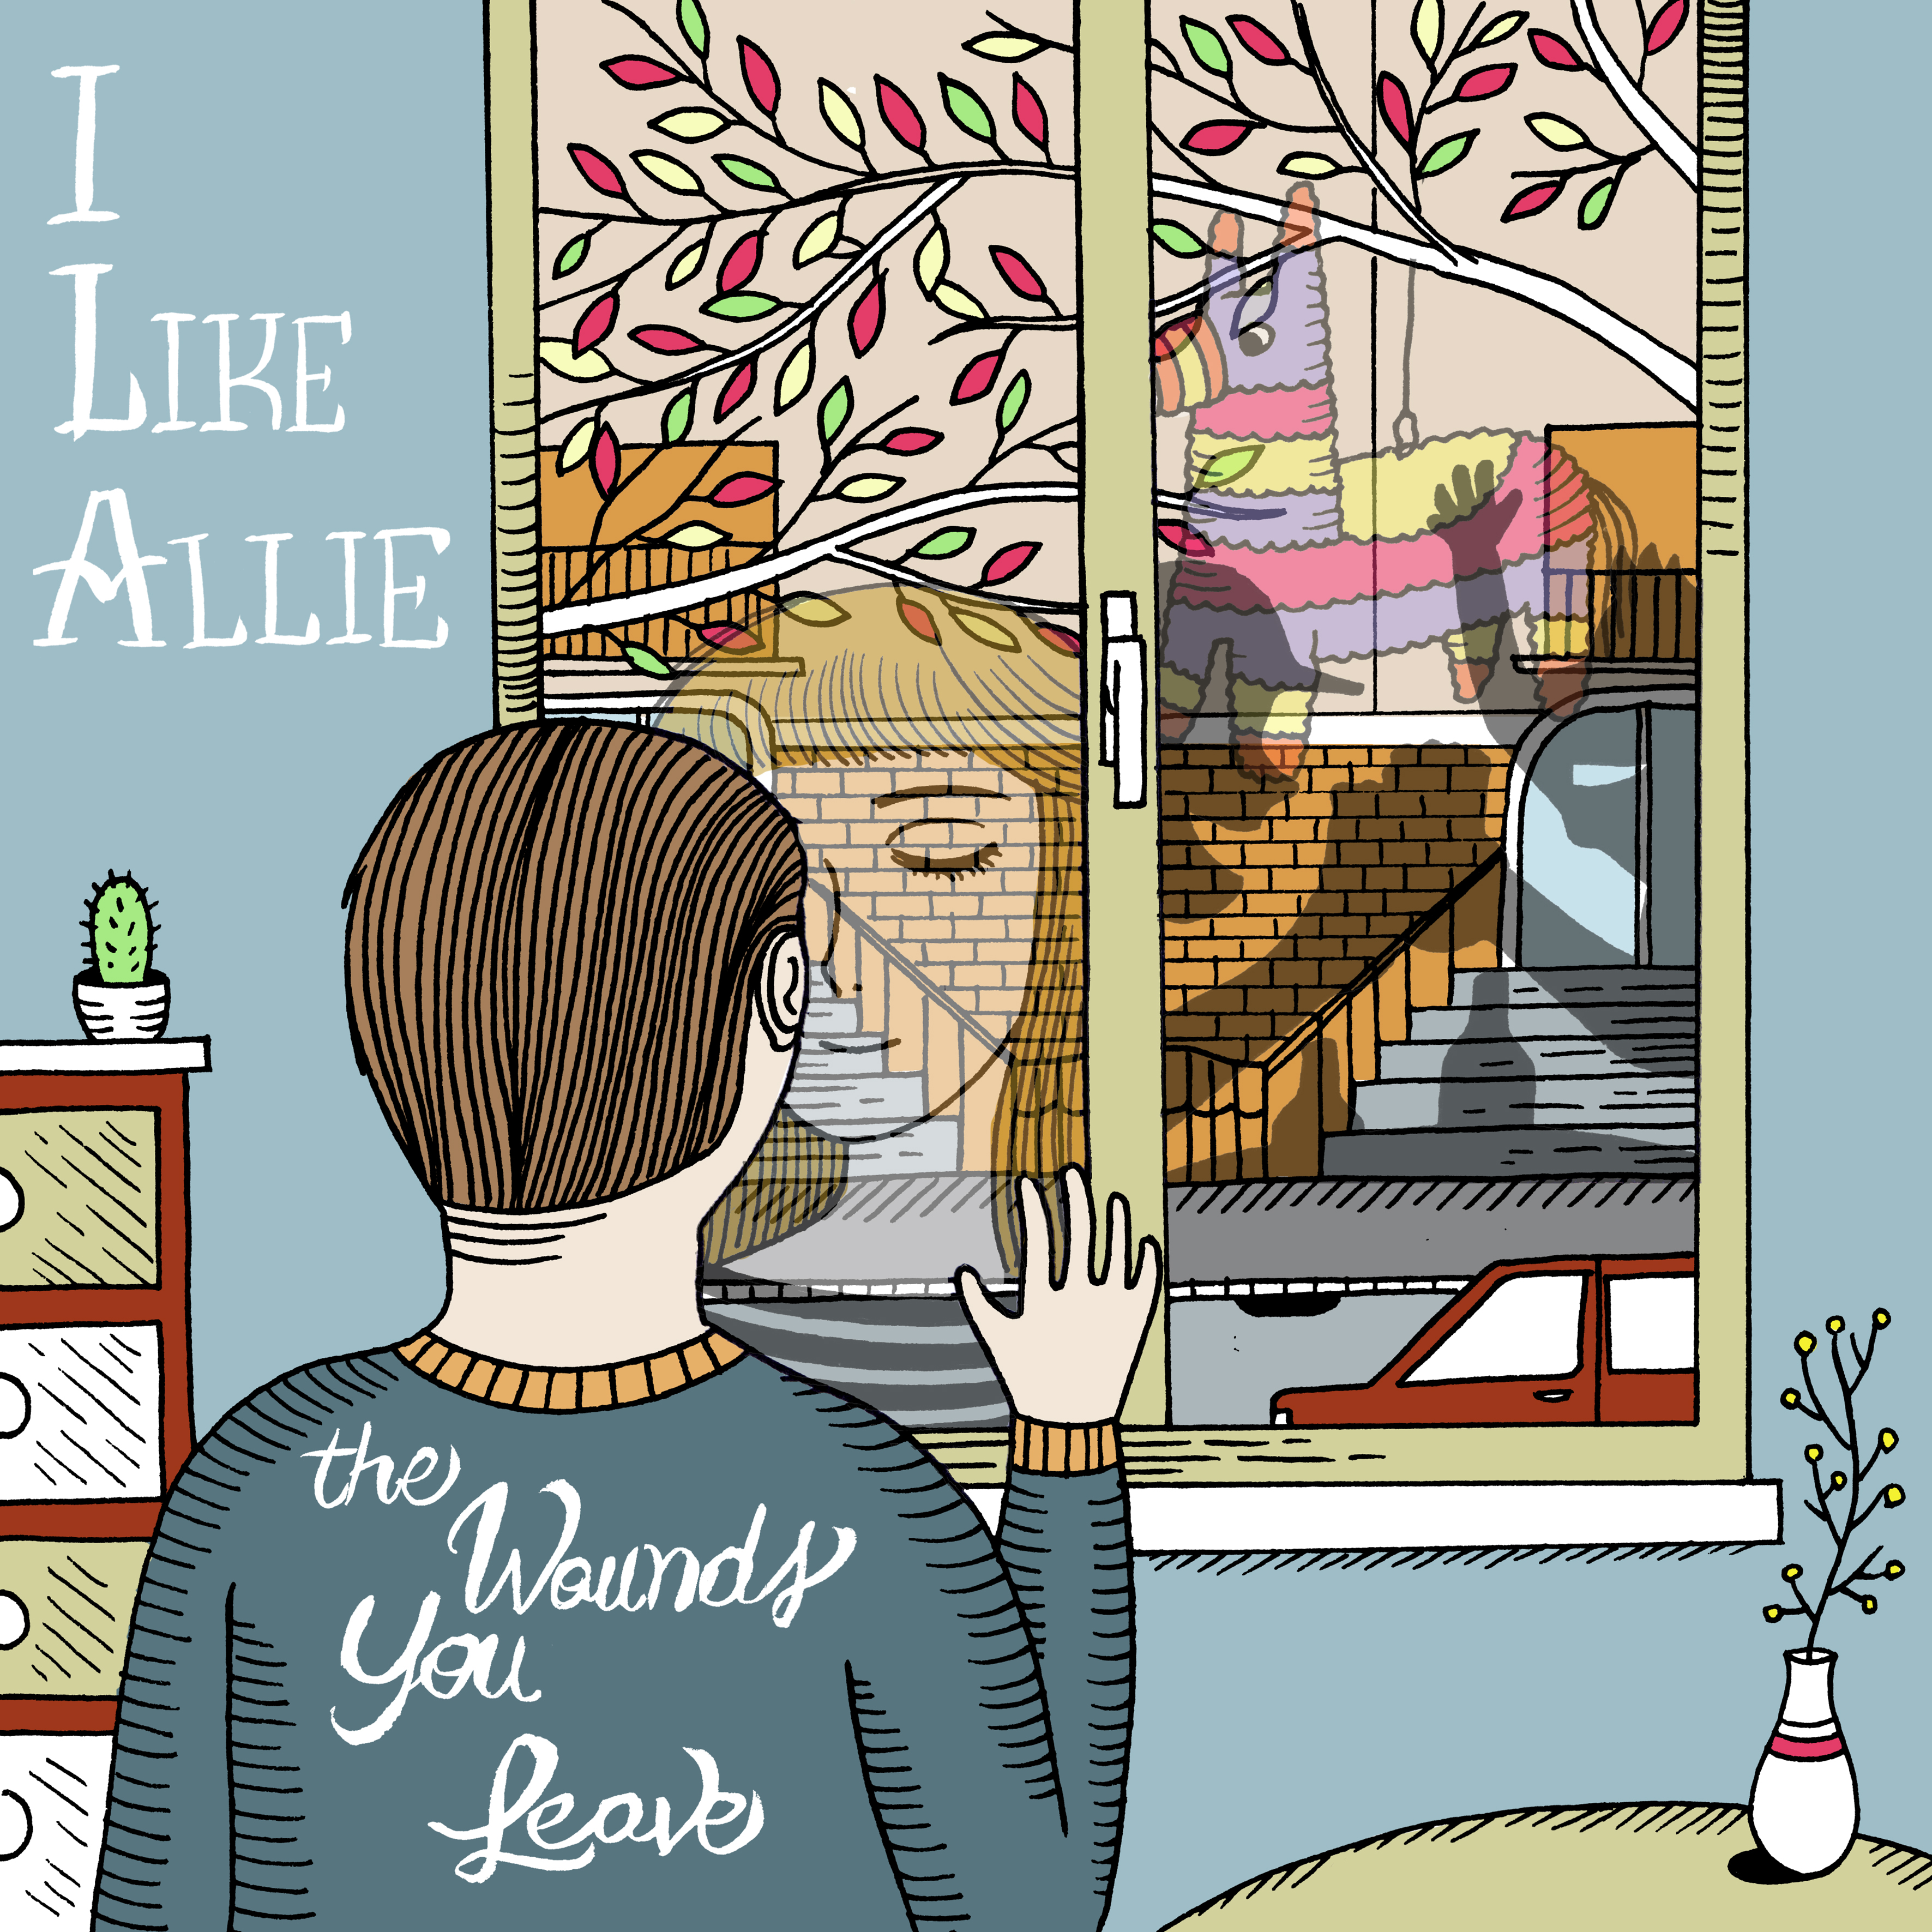 I Like Allie - The Wounds You Leave - Black Vinyl